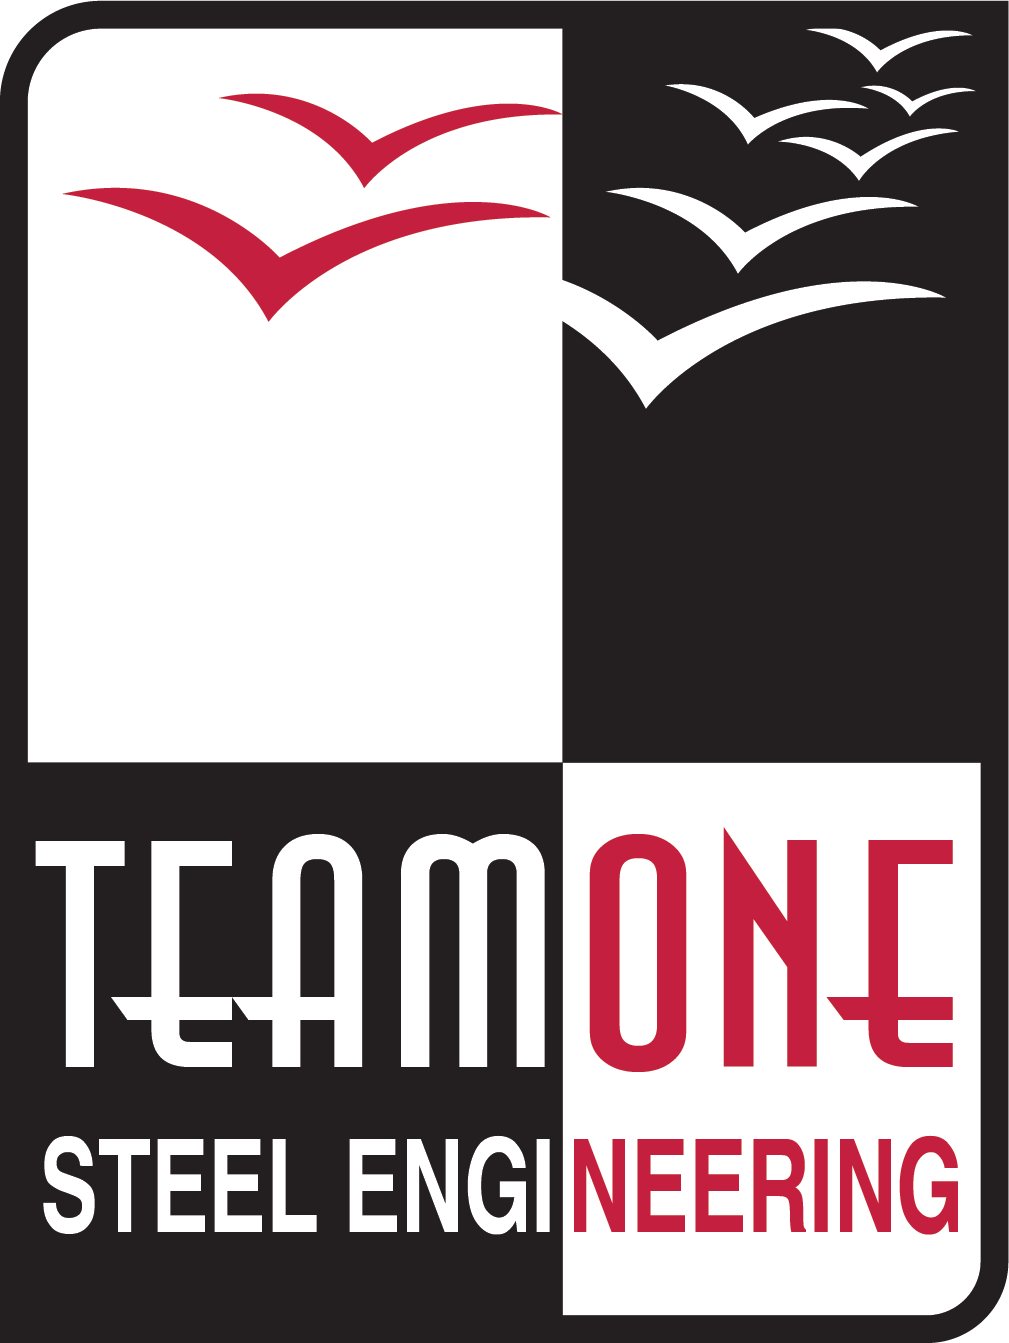 Team One Steel Engineering